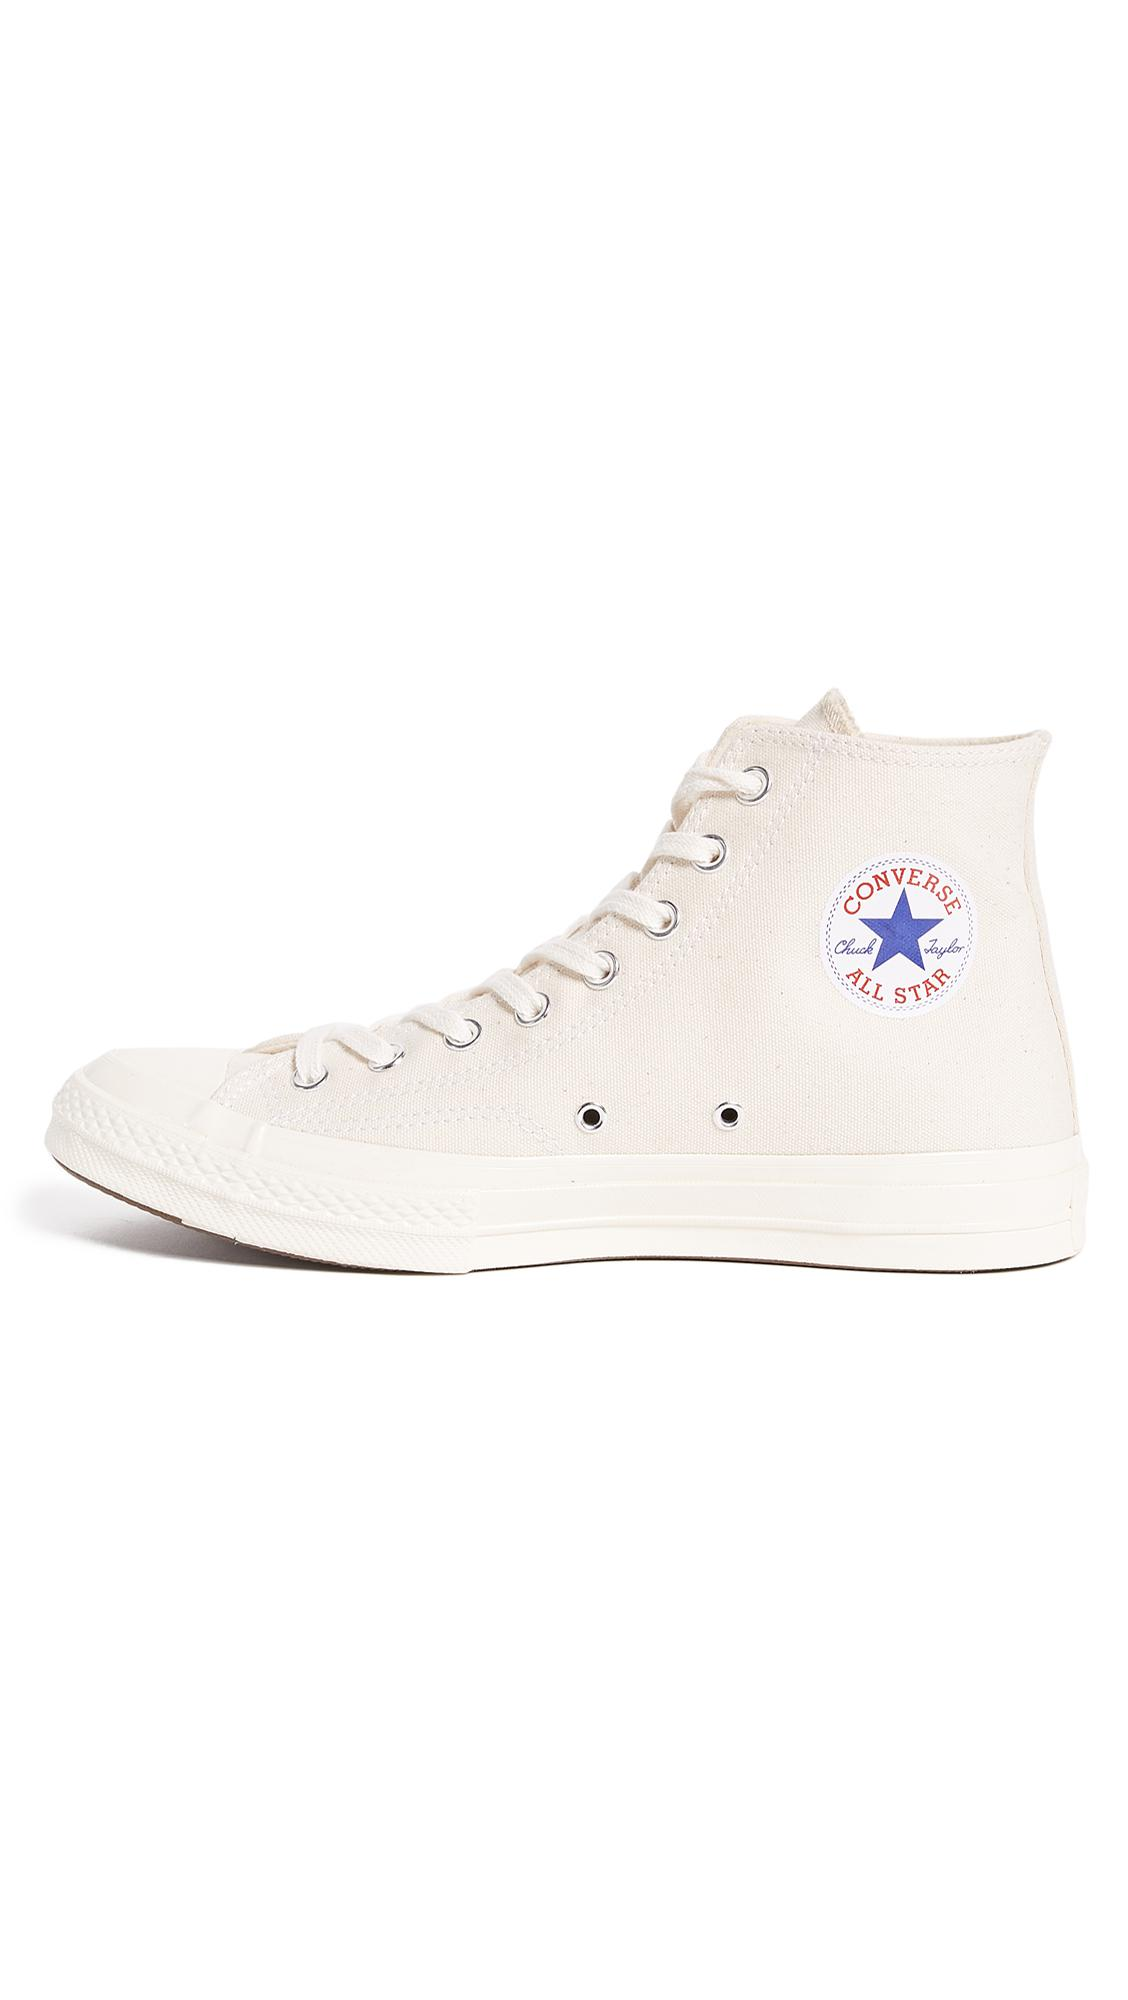 36885d50d538 Lyst - Converse Chuck Taylor All Star  70s High Top Sneakers in ...